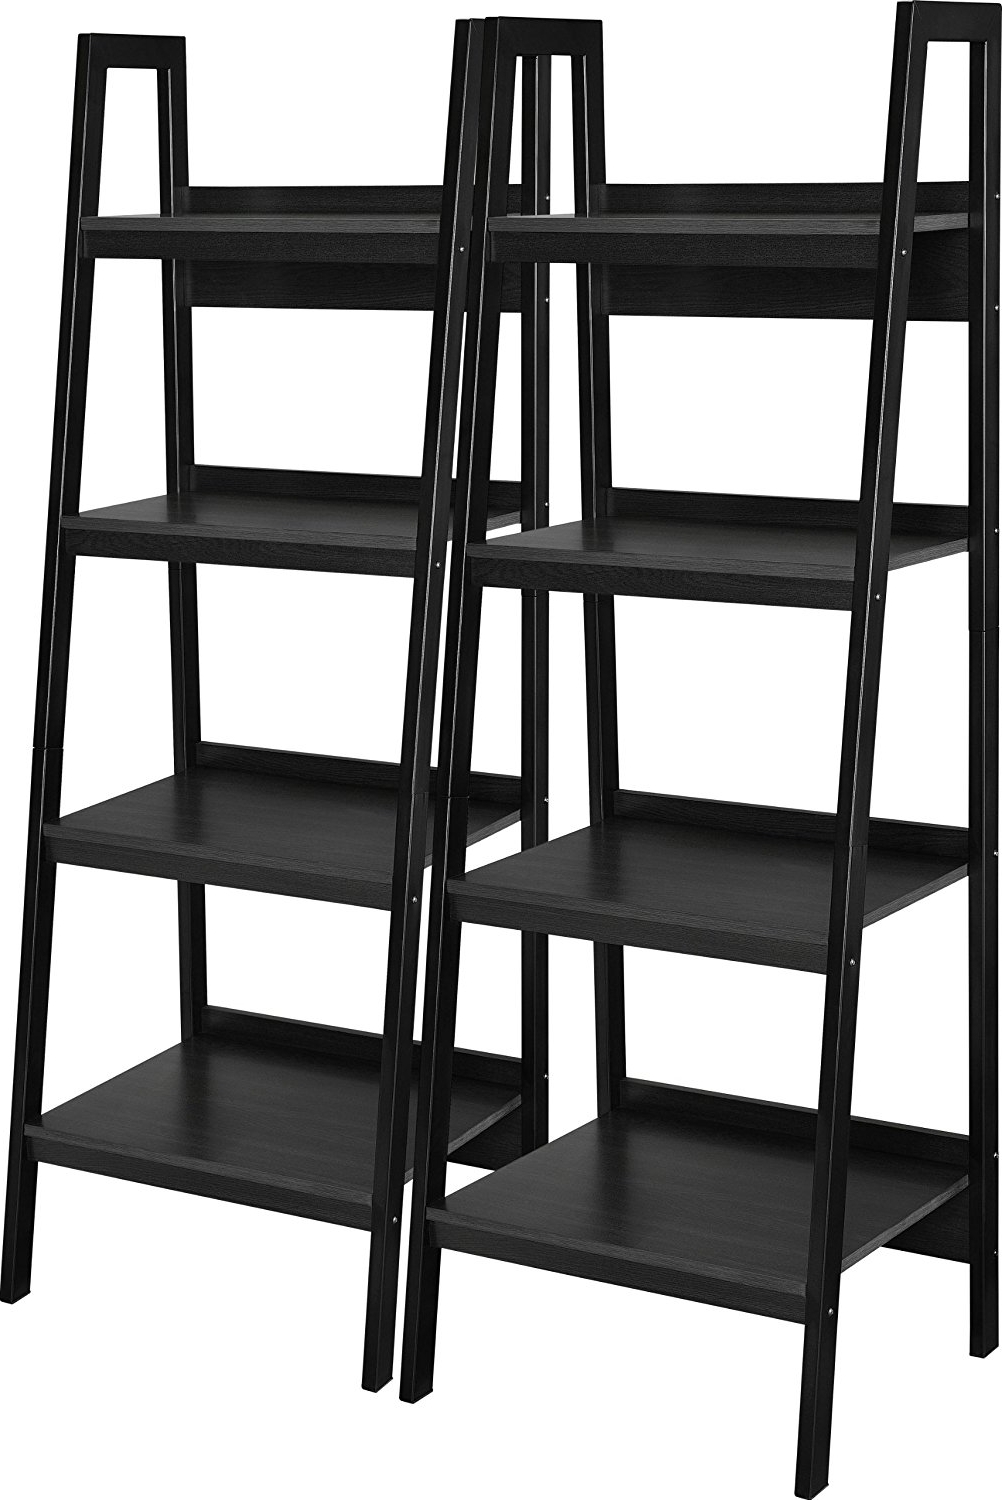 Ladder Bookcases With Regard To Latest Amazon: Ameriwood Home Lawrence 4 Shelf Ladder Bookcase Bundle (View 8 of 15)